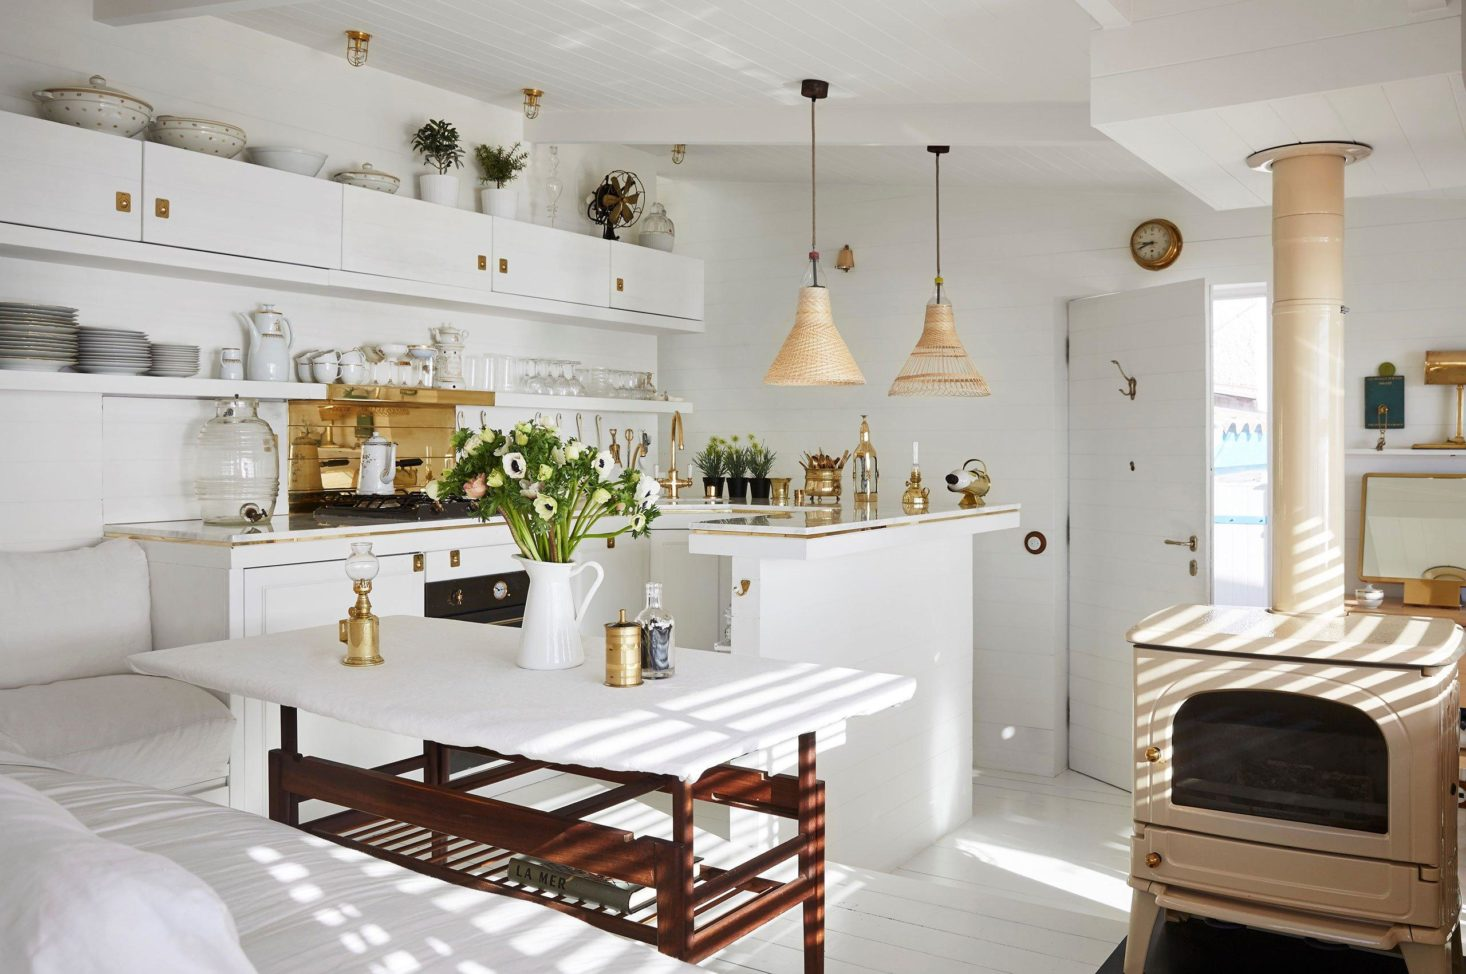 Steal This Look: A Tiny, Seaworthy Kitchen on the French Riviera